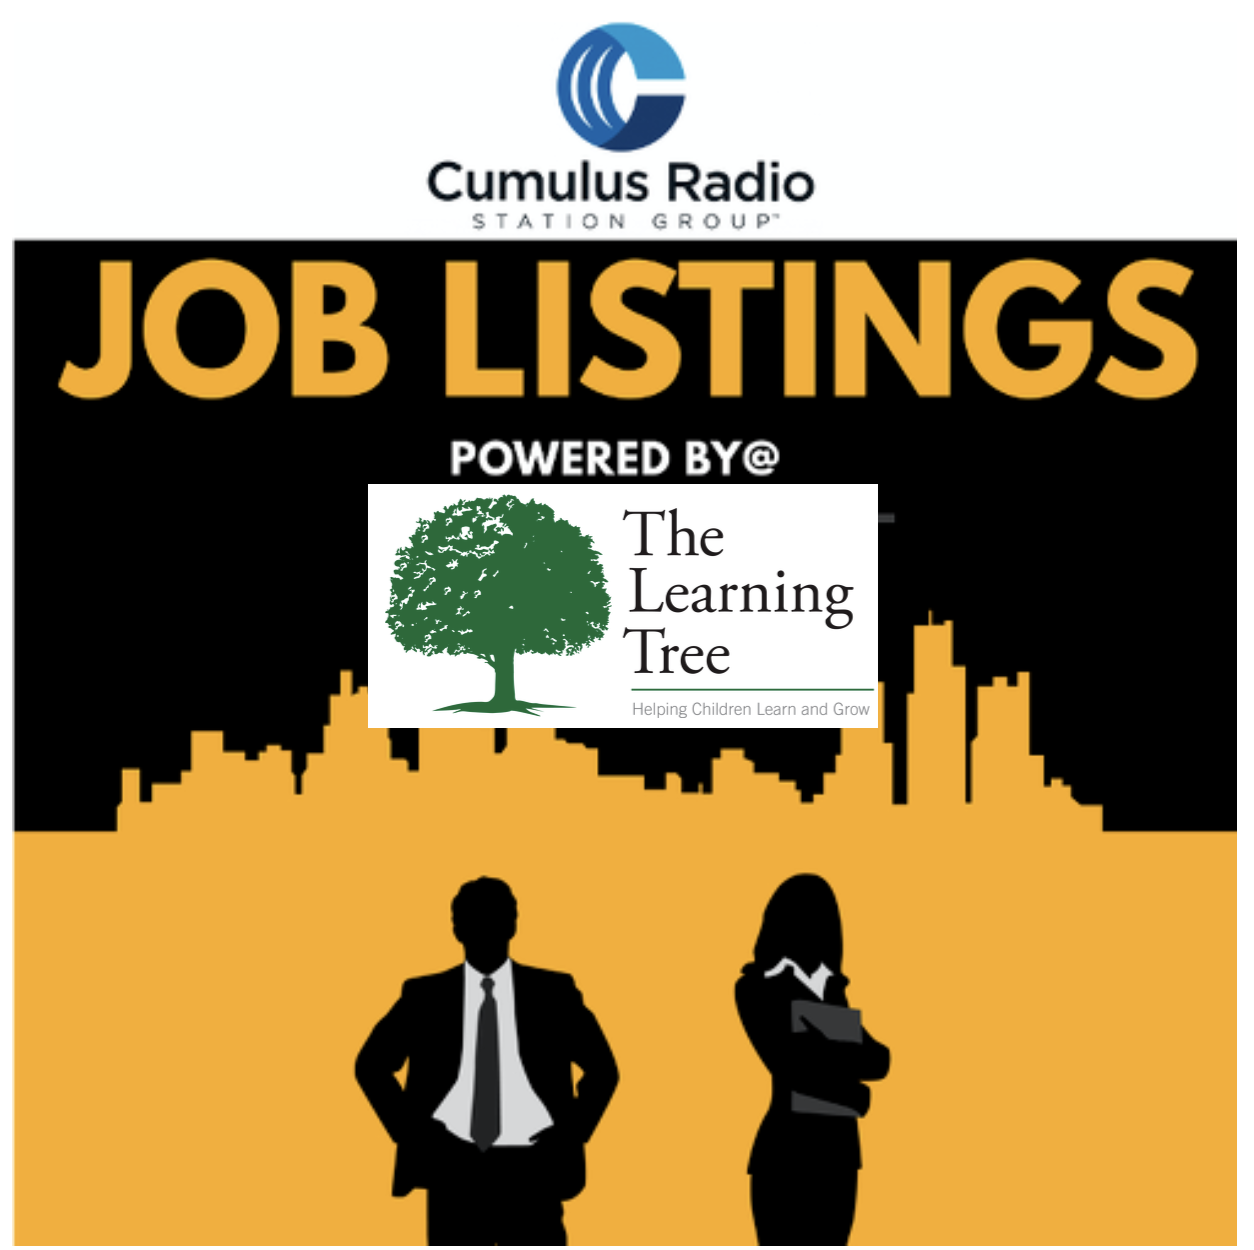 VIRTUAL JOB LISTINGS